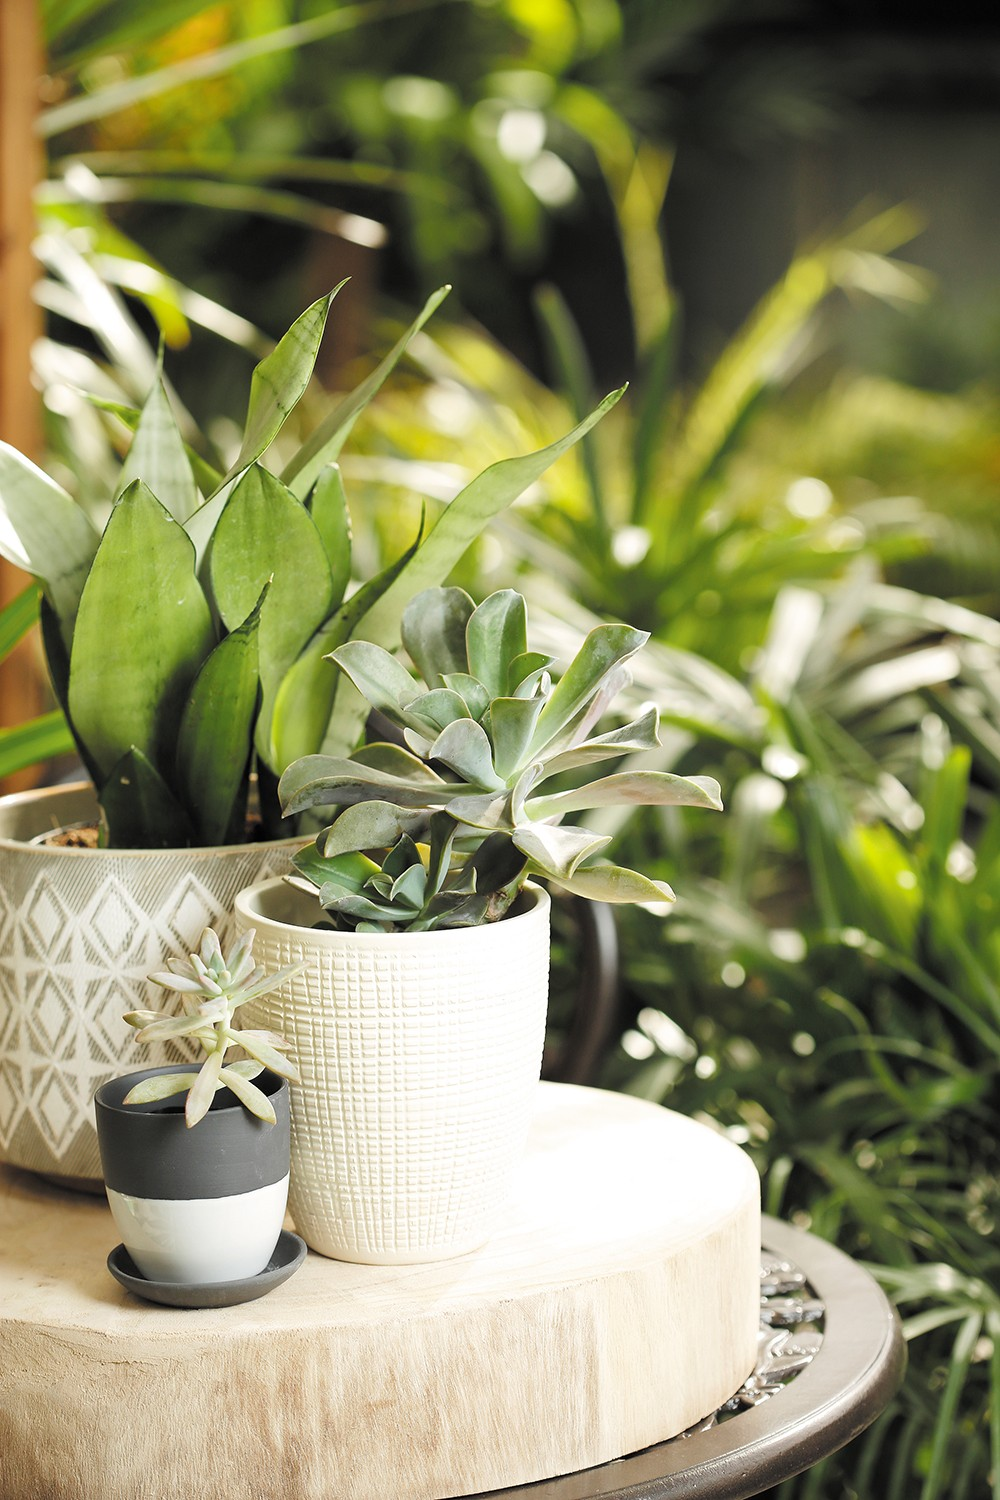 Graptoverie and sansevieria at the Plant Farm. - YOUNG KWAK